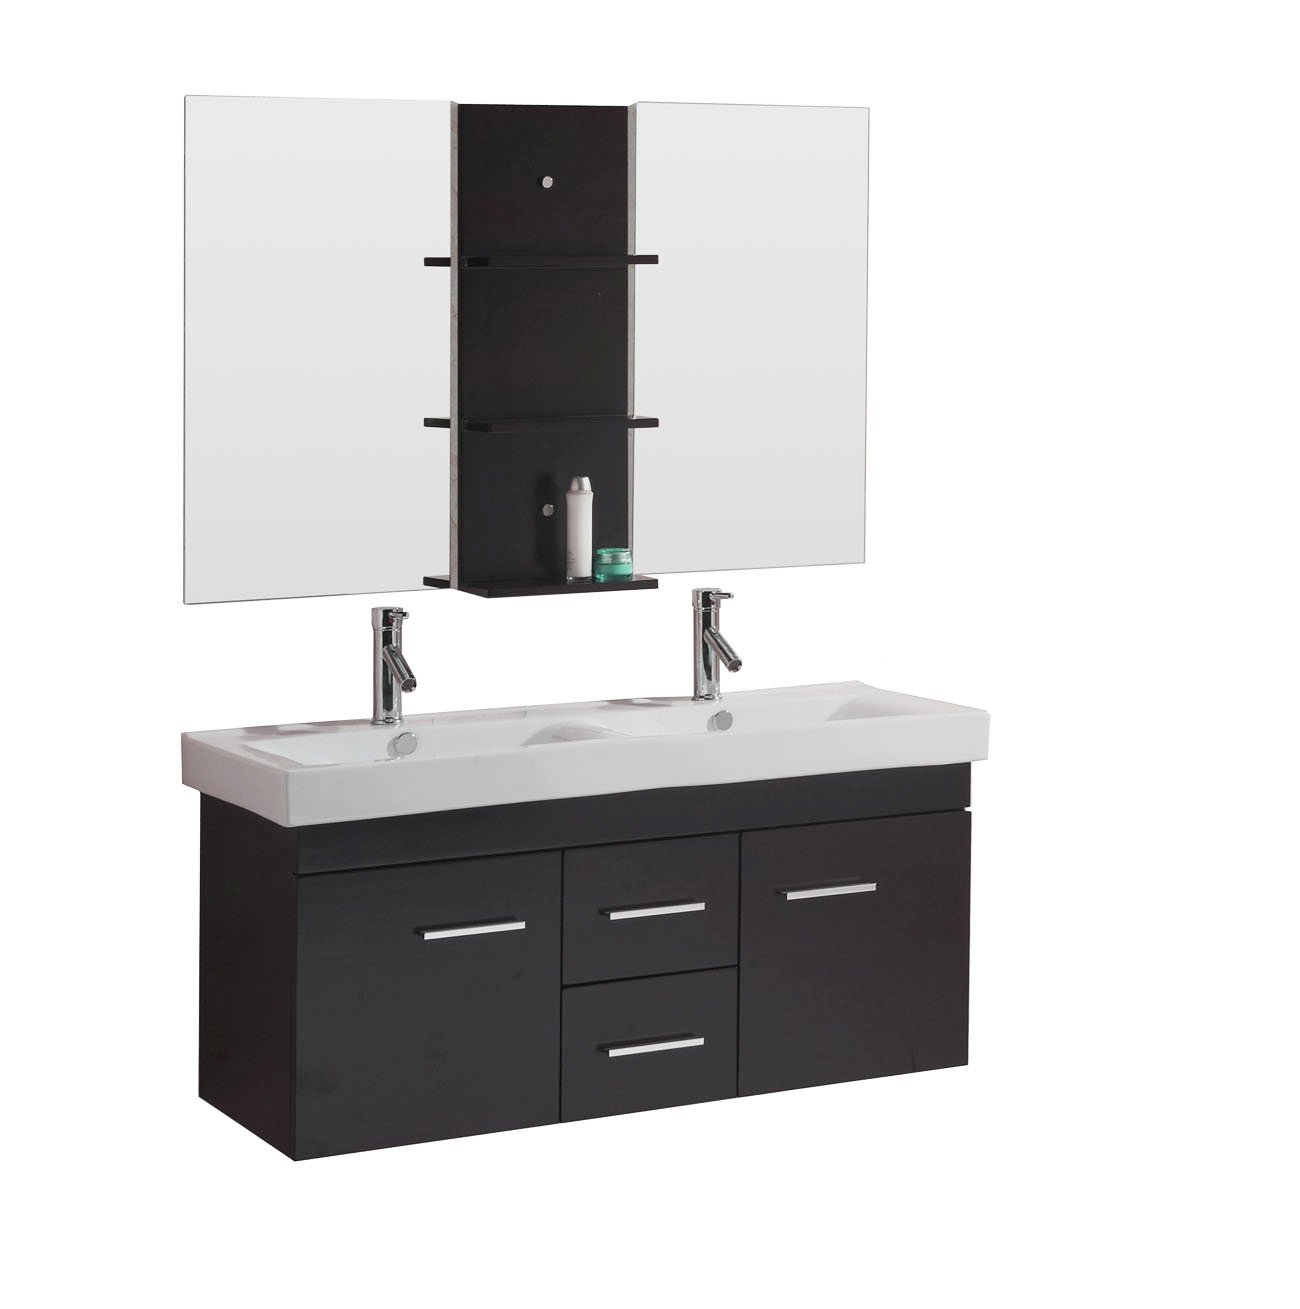 bathroom vanity double sink 48 inches. virtu usa um-3067-c-es opal 48-inch wall-mounted double sink bathroom vanity with integrated ceramic basins, faucets, espresso finish - amazon.com 48 inches